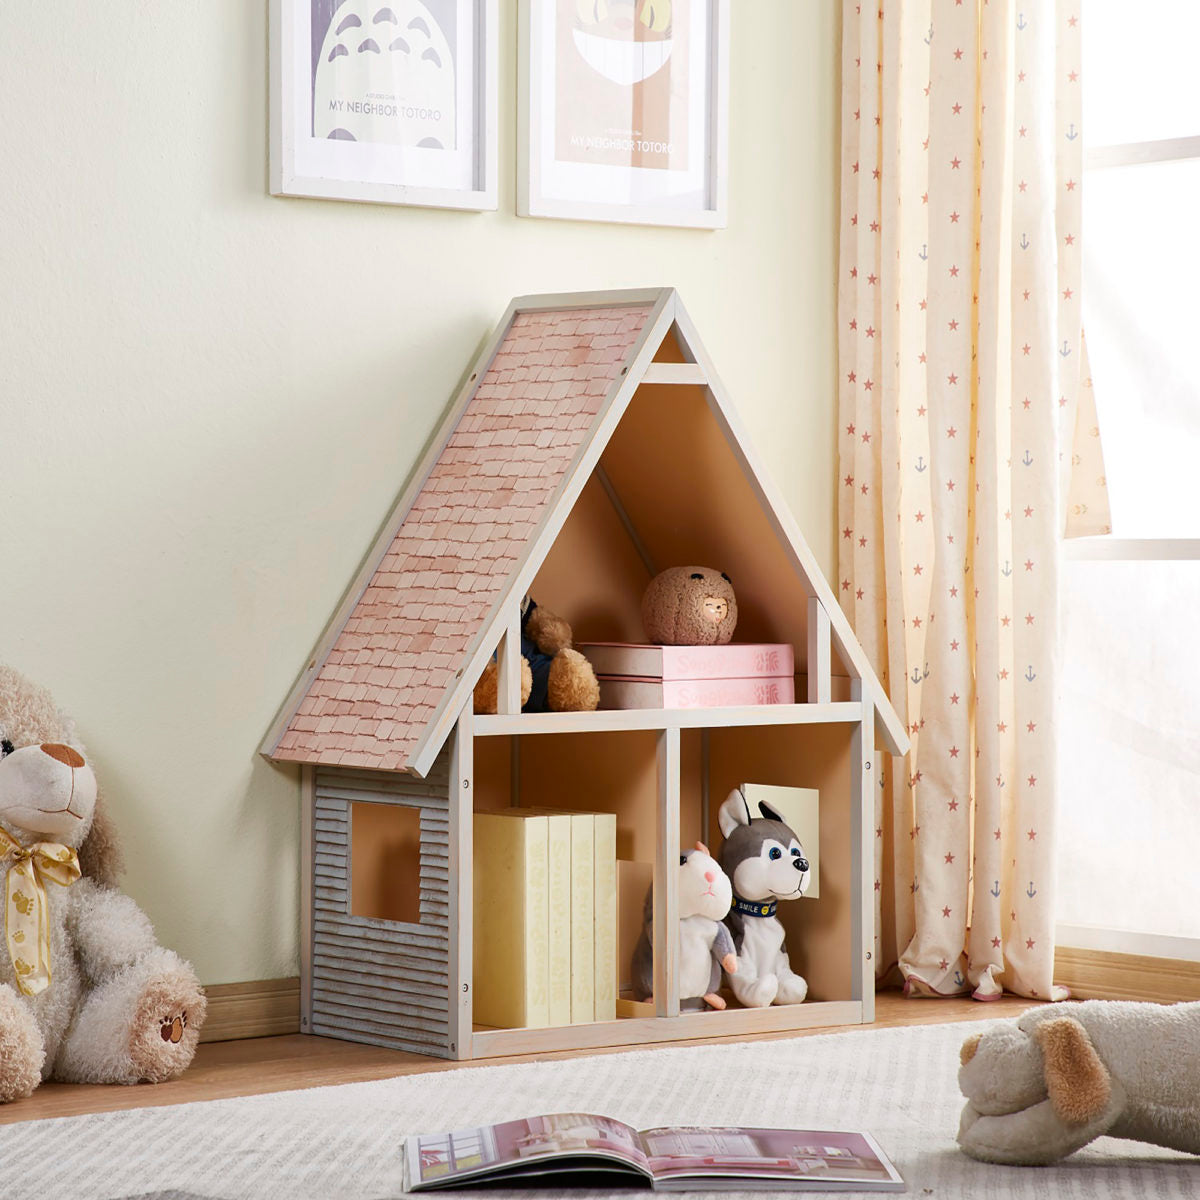 Dollhouse Chalet, Toys & Games by Low Cost Gifts